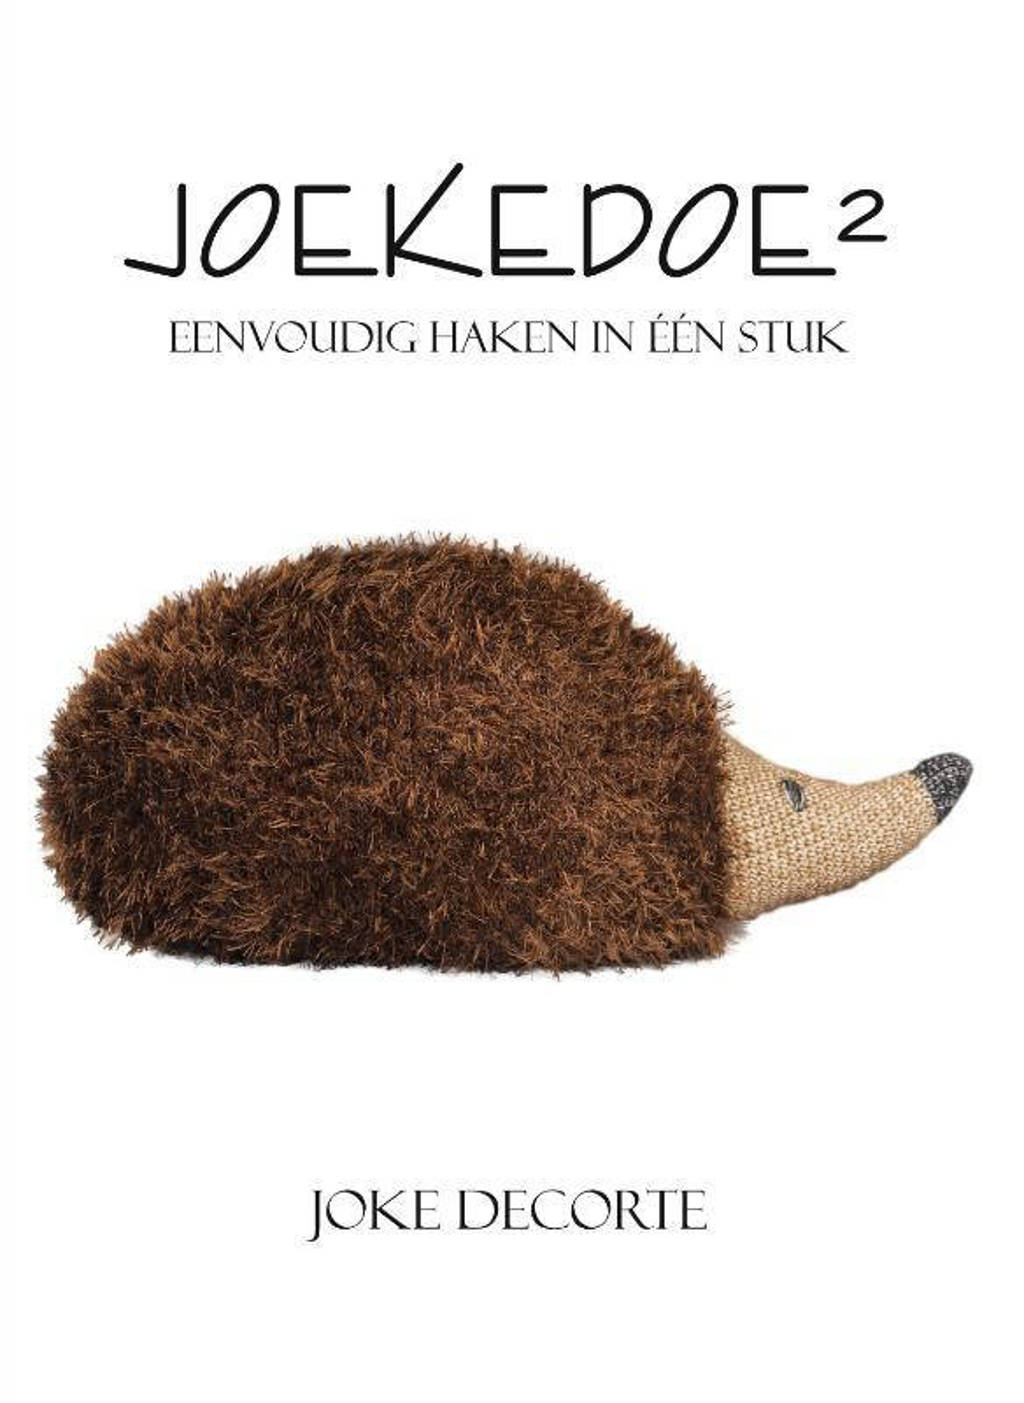 Joekedoe 2 - Joke Decorte